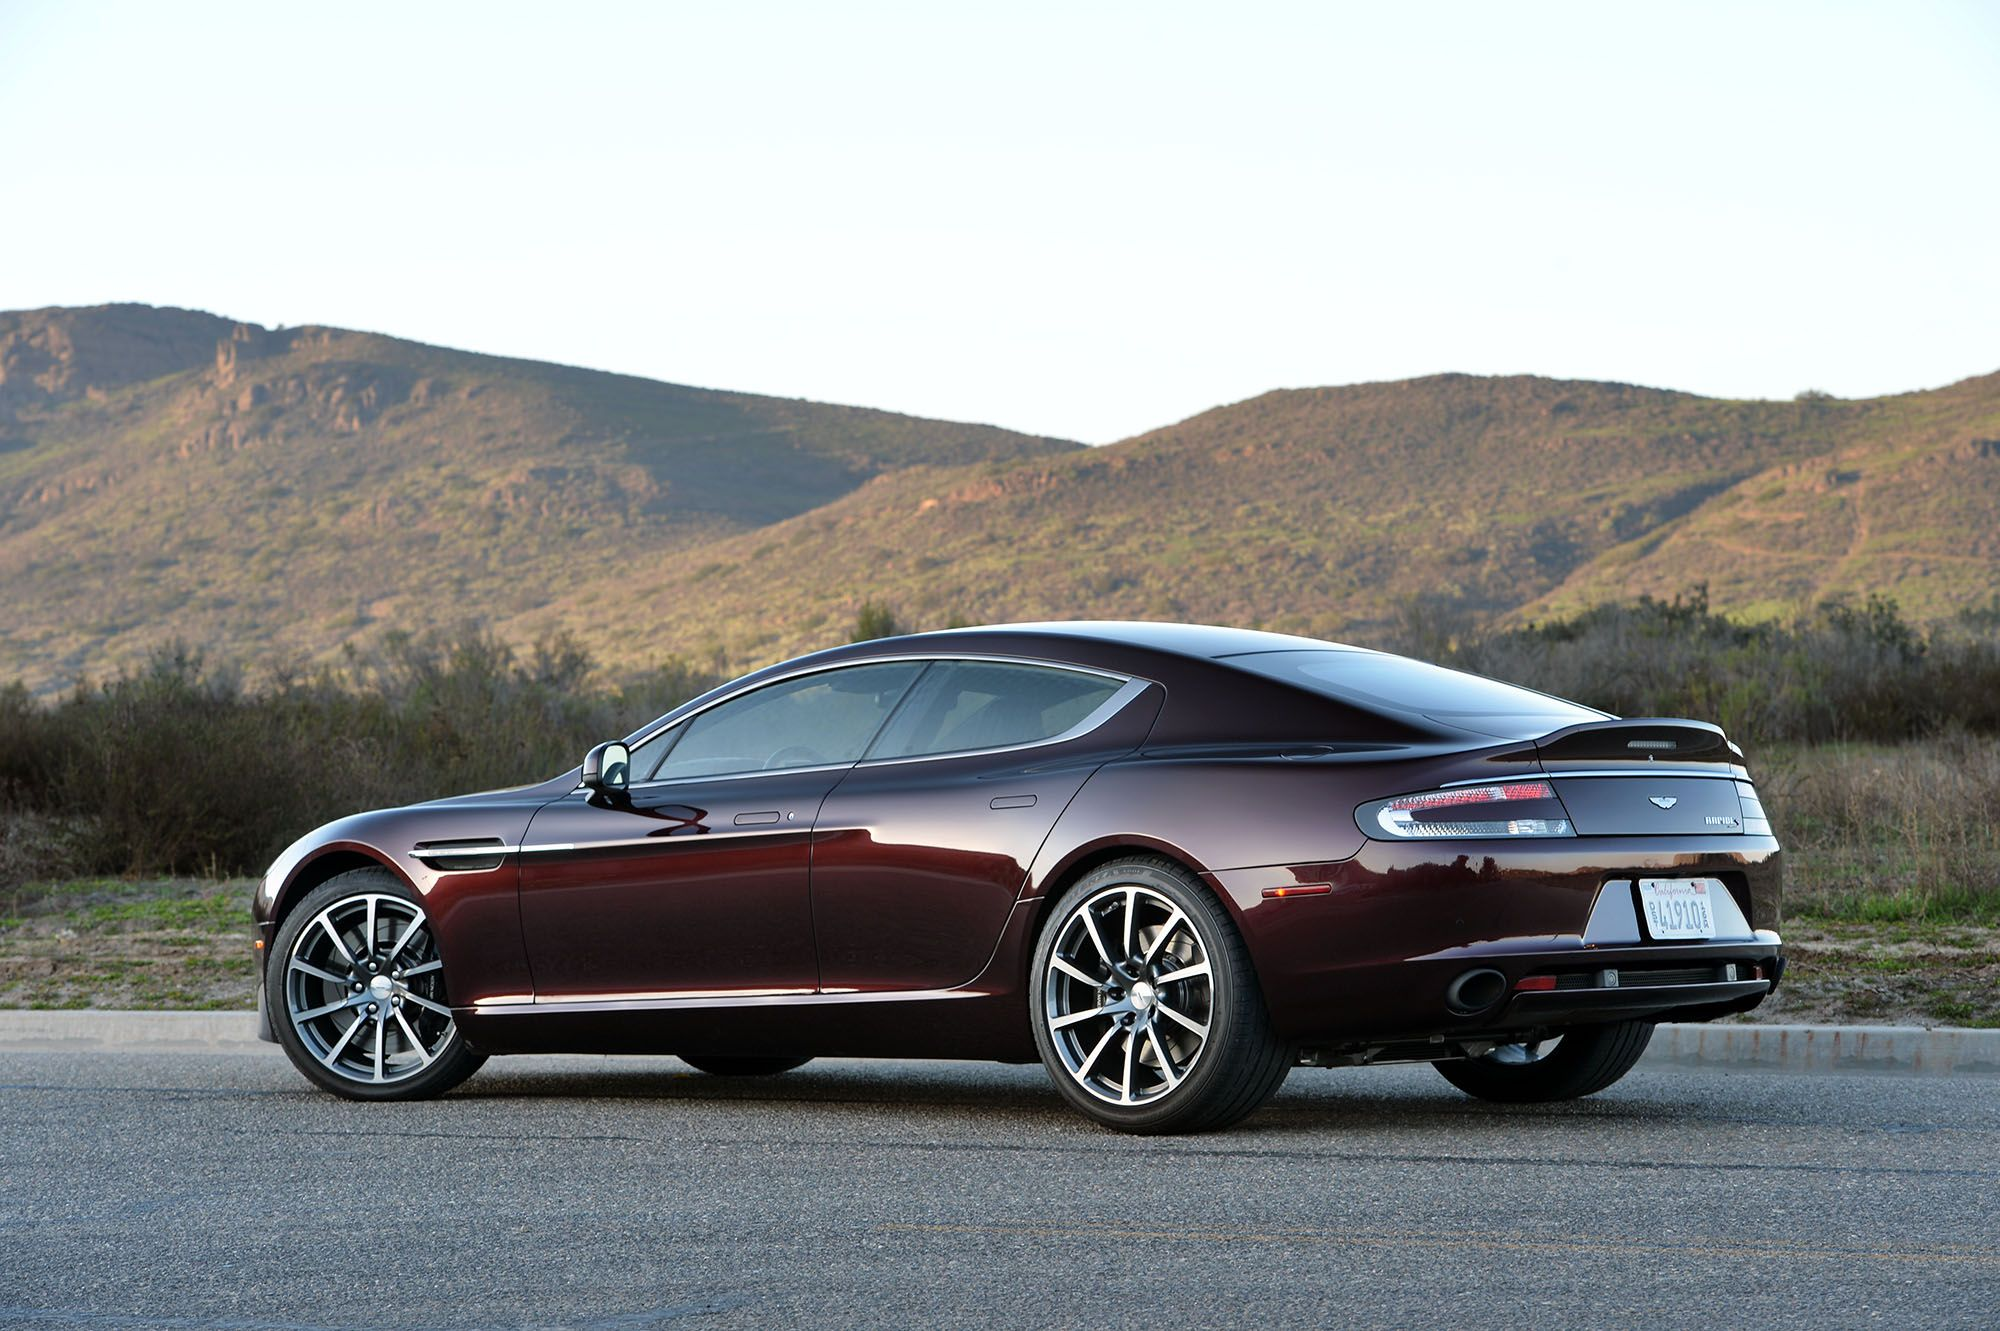 Aston Martin Rapide S The World S Most Beautiful 4 Door Sports Car Discover More At Http Www Ast Aston Martin Rapide Aston Martin Cars Aston Martin Lagonda